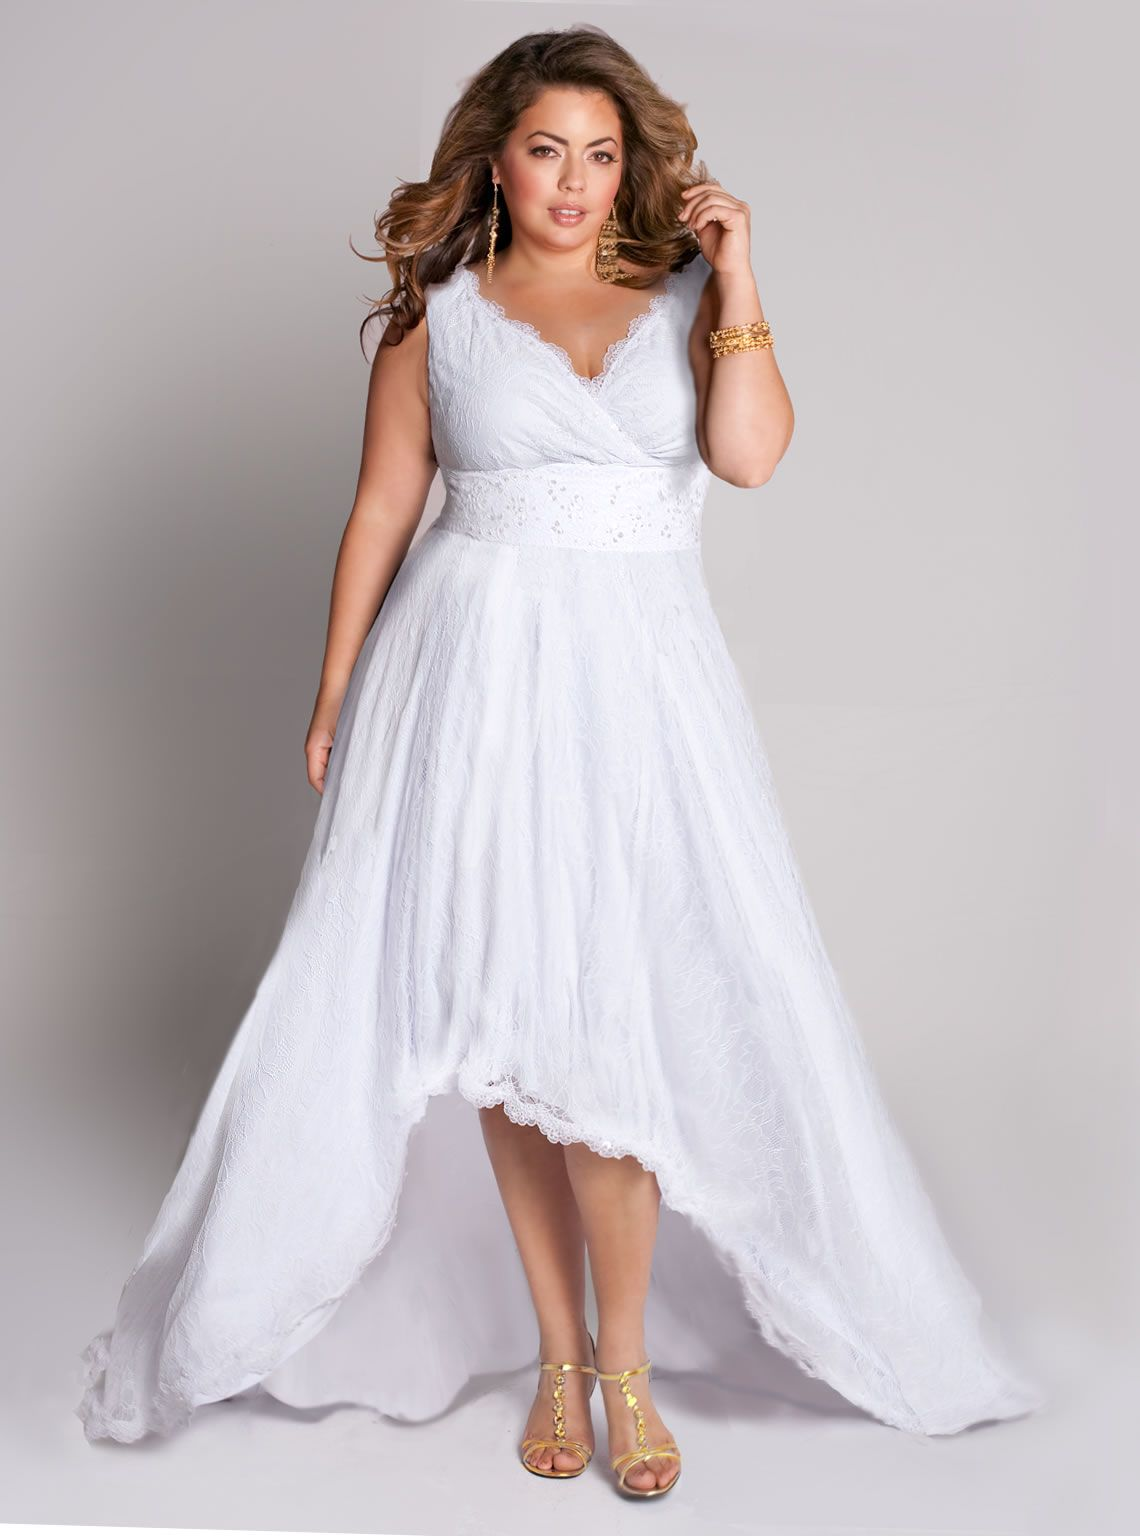 Dresses to suit big bust bridesmaid dresses to suit big bust ombrellifo Image collections